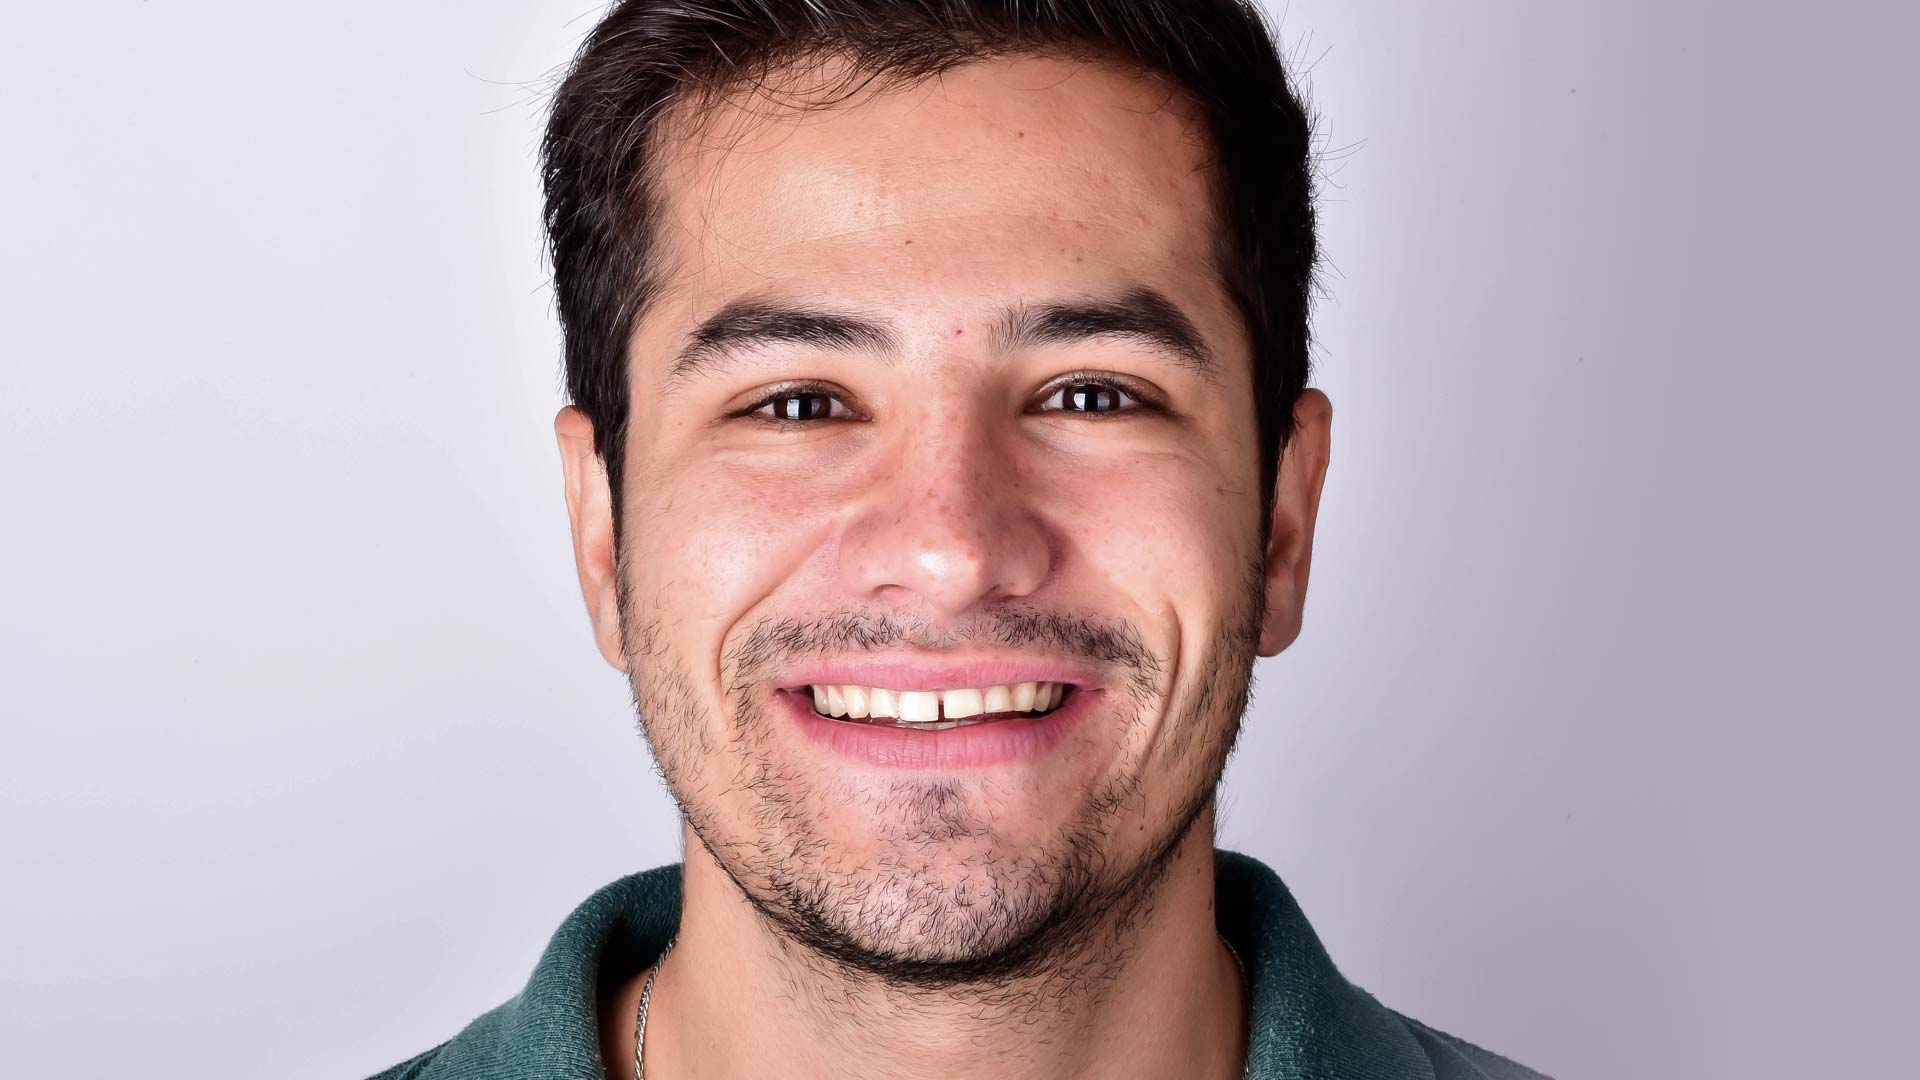 A young man smiling and showing his teeth before Digital Smile Design dental treatment